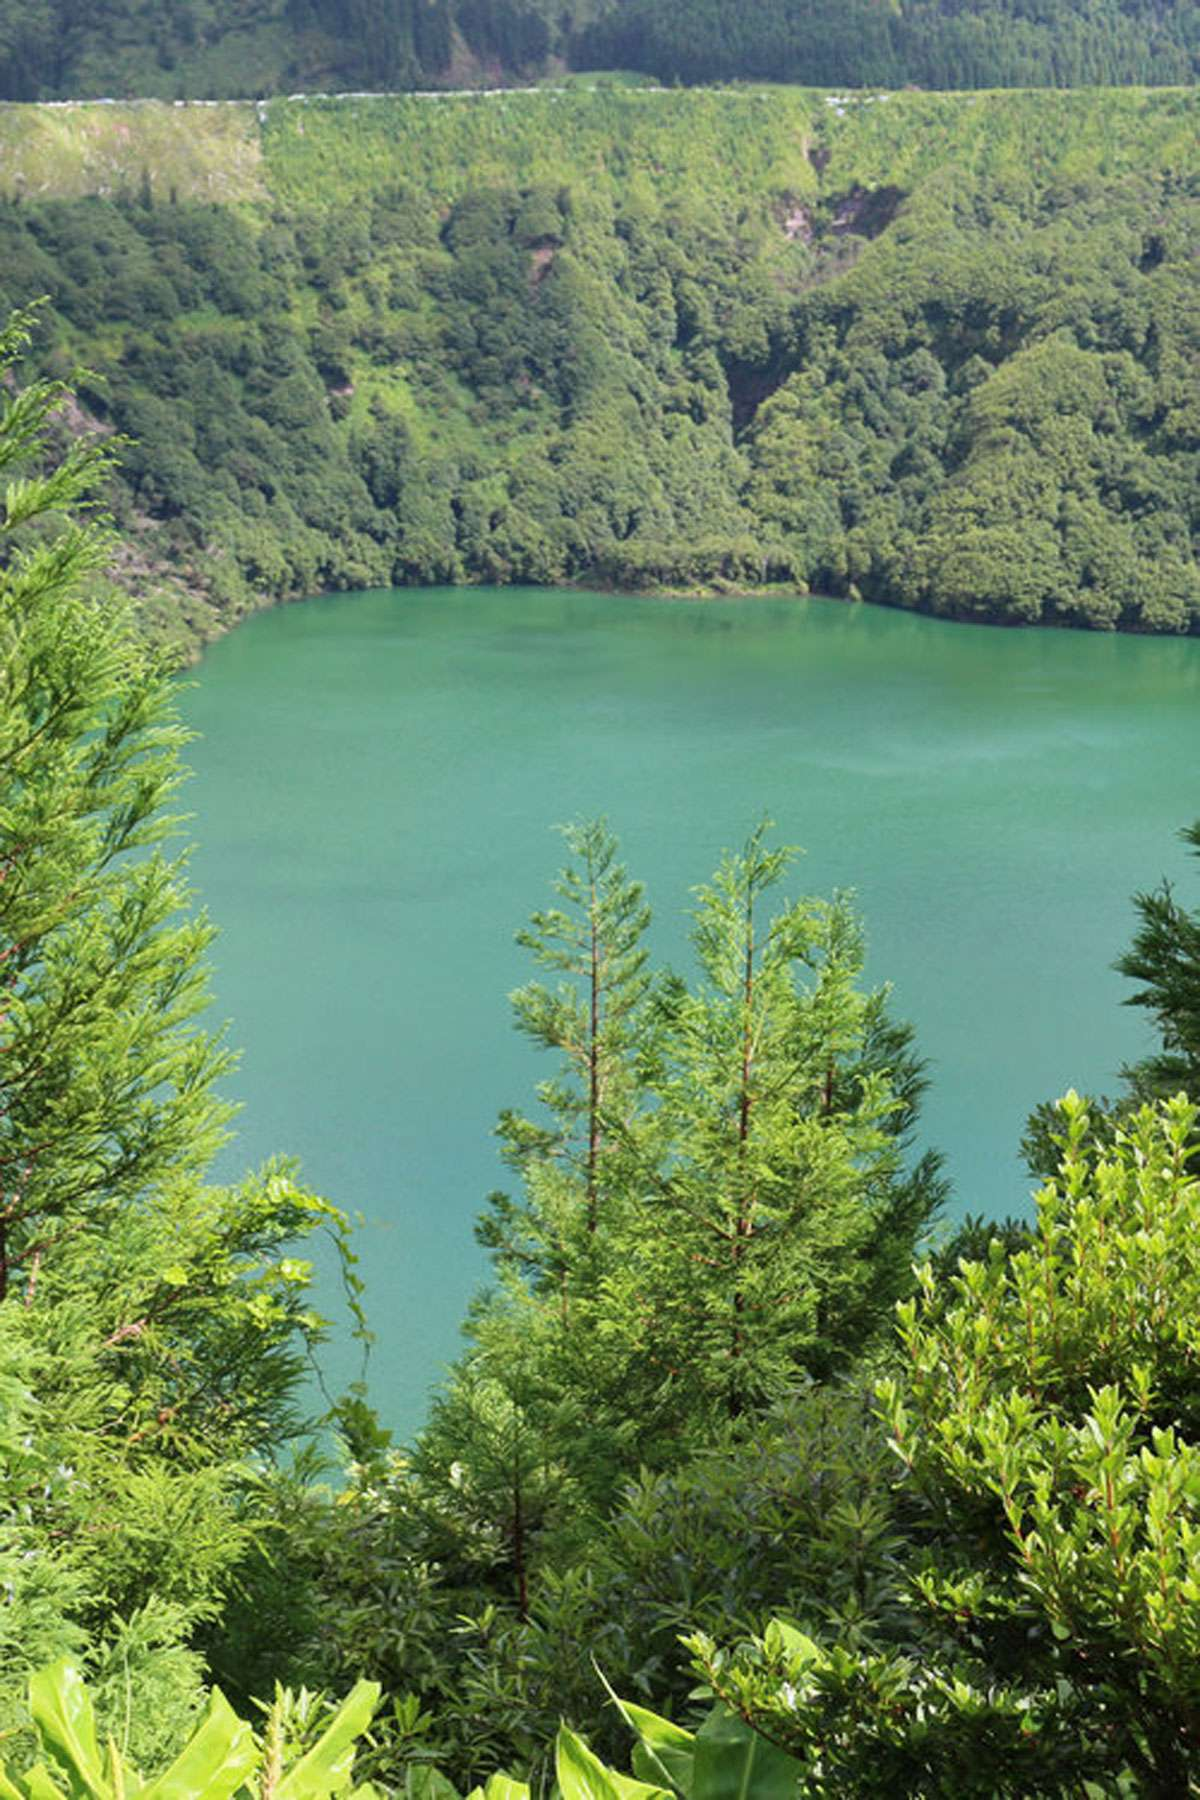 Azores scenery is reminiscent of Hawaii, Iceland and Ireland